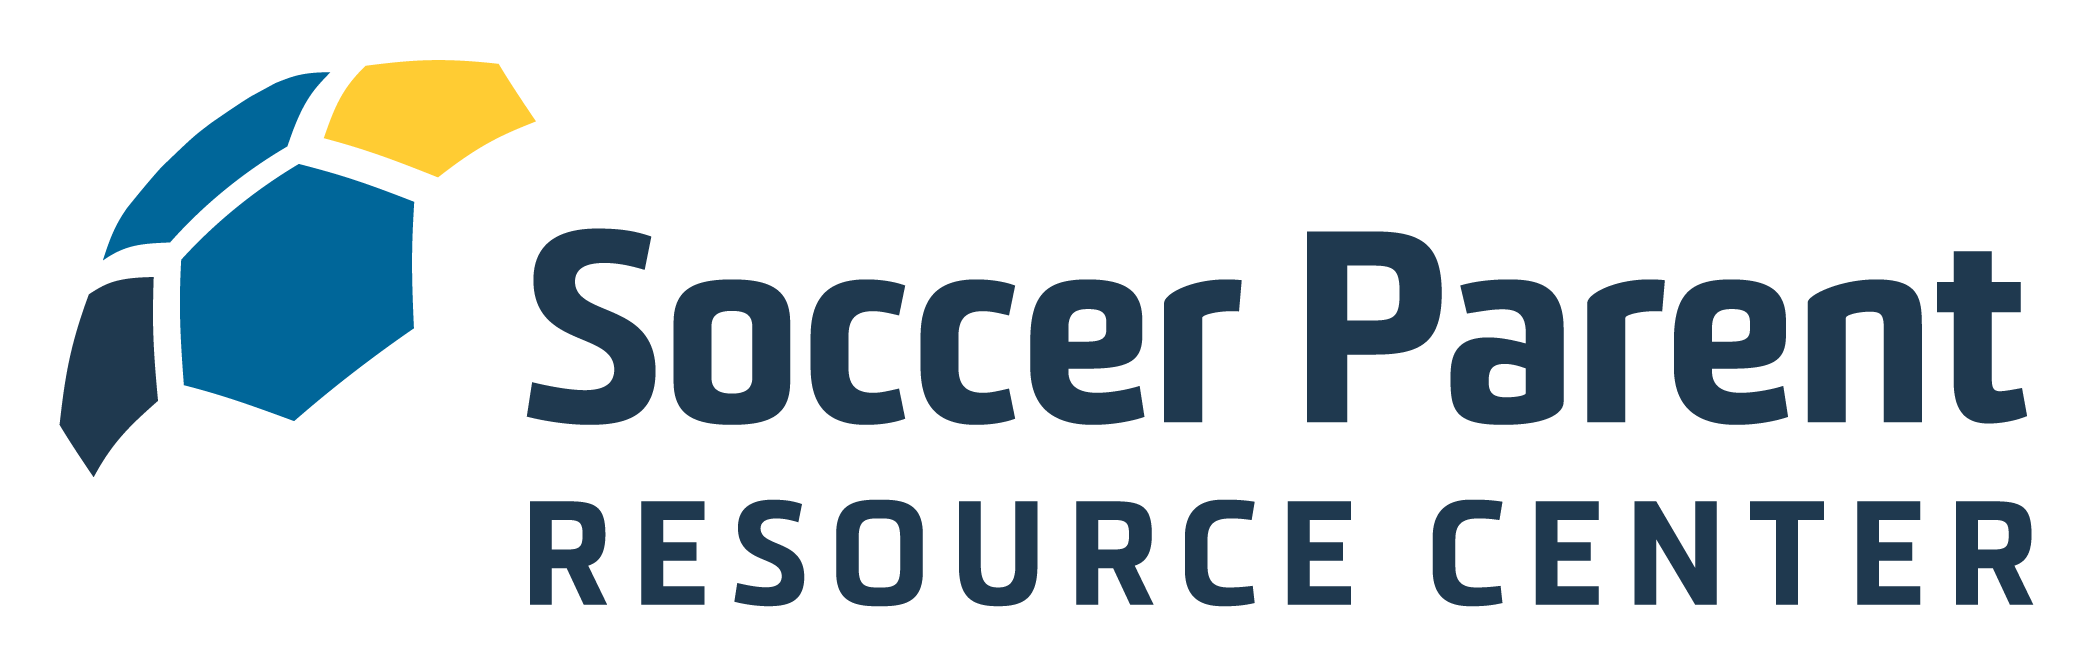 Soccer Parenting Resource Center